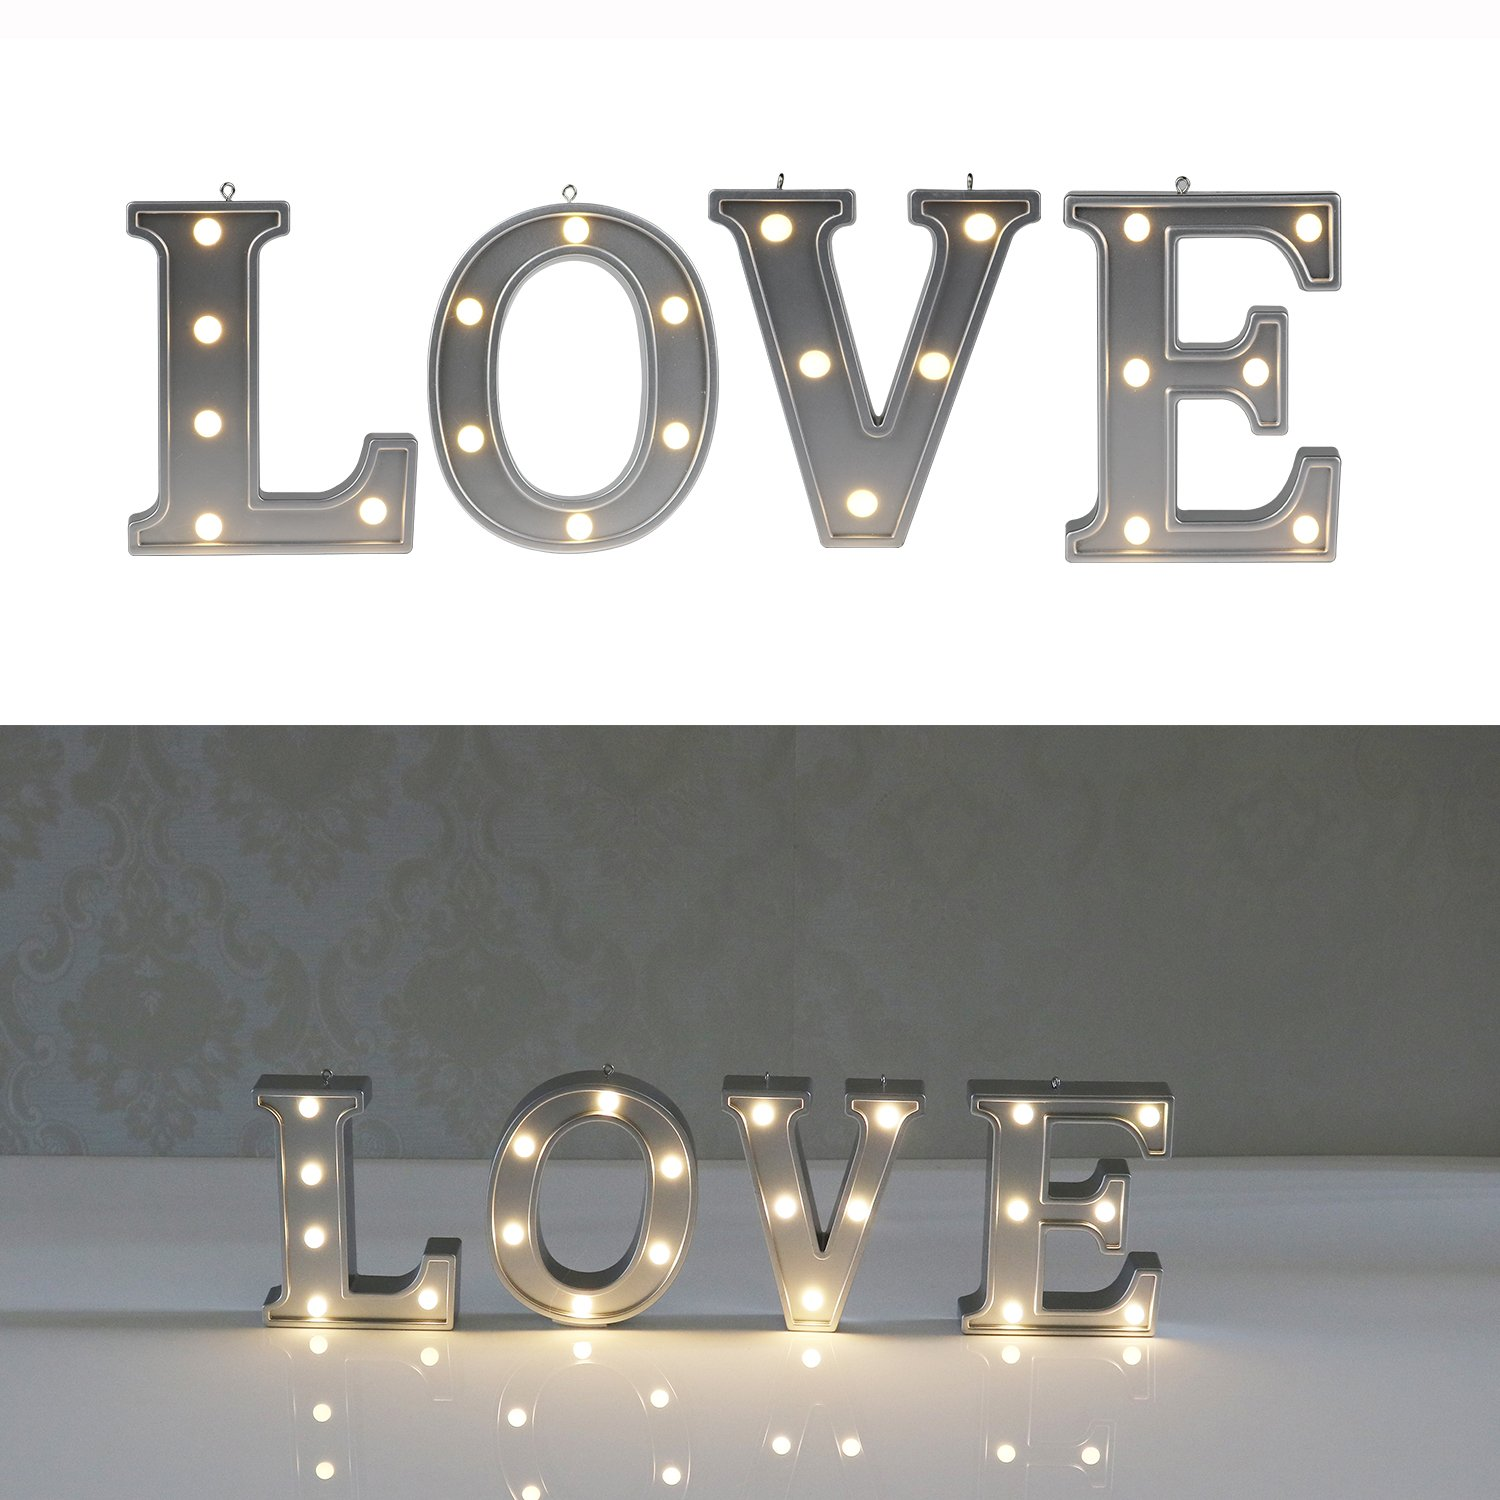 Decorative Illuminated Marquee Word Sign (Silver Color 4.21'' Tall) - Lighted Letter Words and Signs for Home Bedroom Office Wedding Table Wall Decor - Love